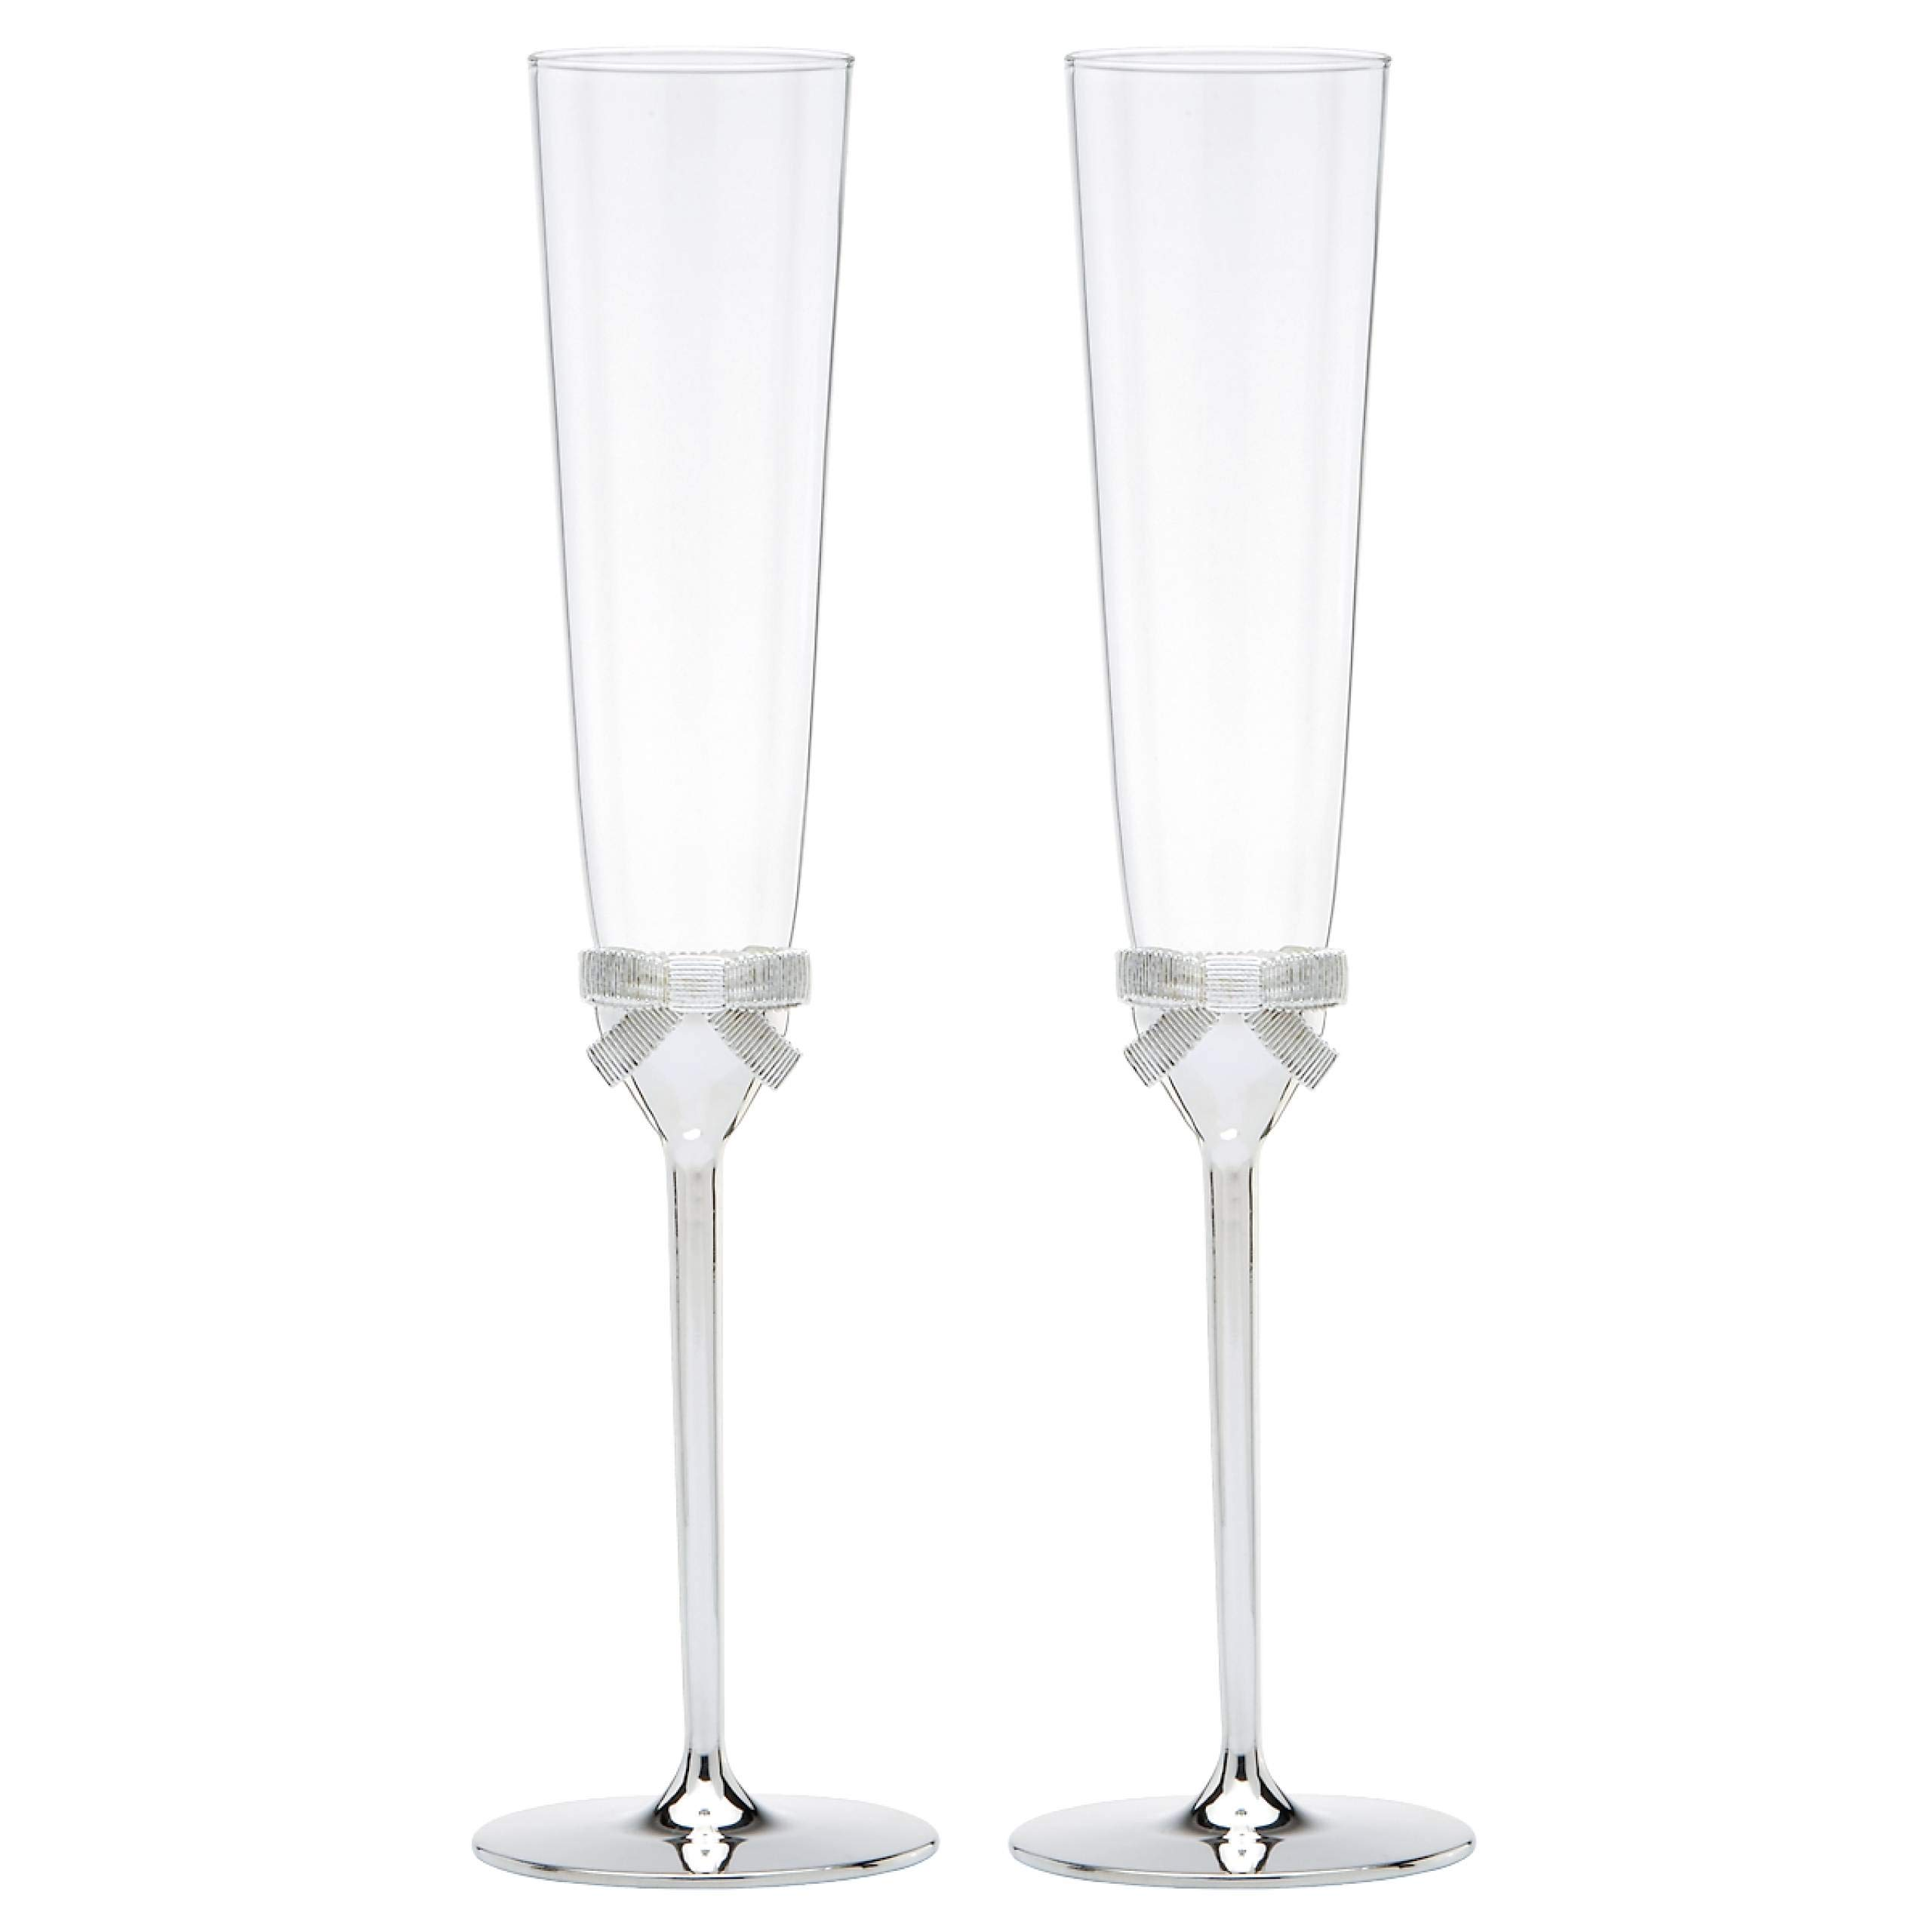 Kate Spade New York 817599 Grace Avenue champagne glass by Kate Spade New York (Image #1)